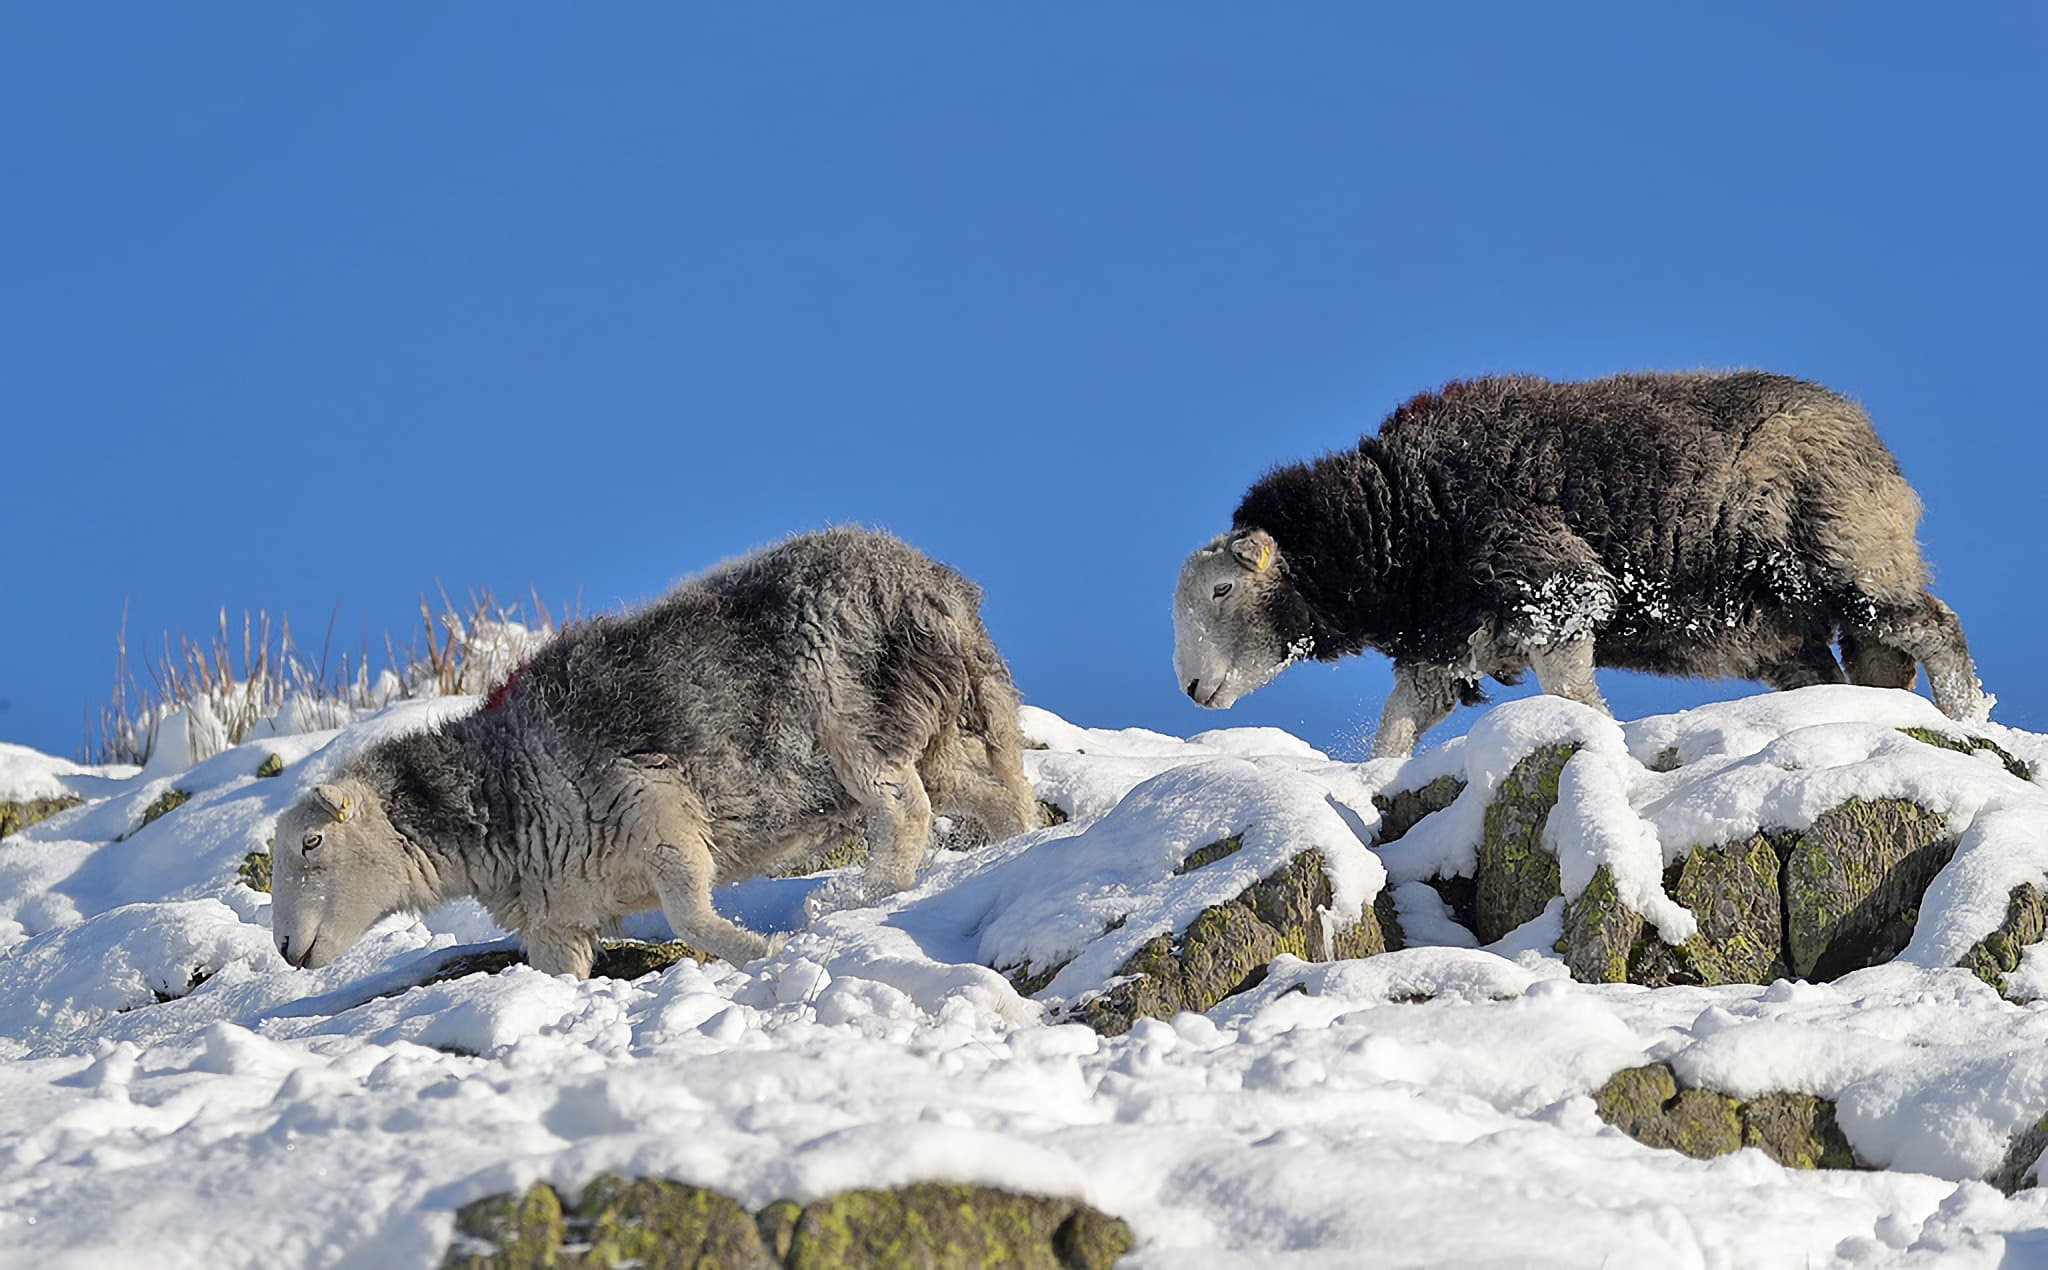 """Herdwick sheep at Reggie Knott"" by Walter Baxter, licensed CC-BY-SA/2.0"